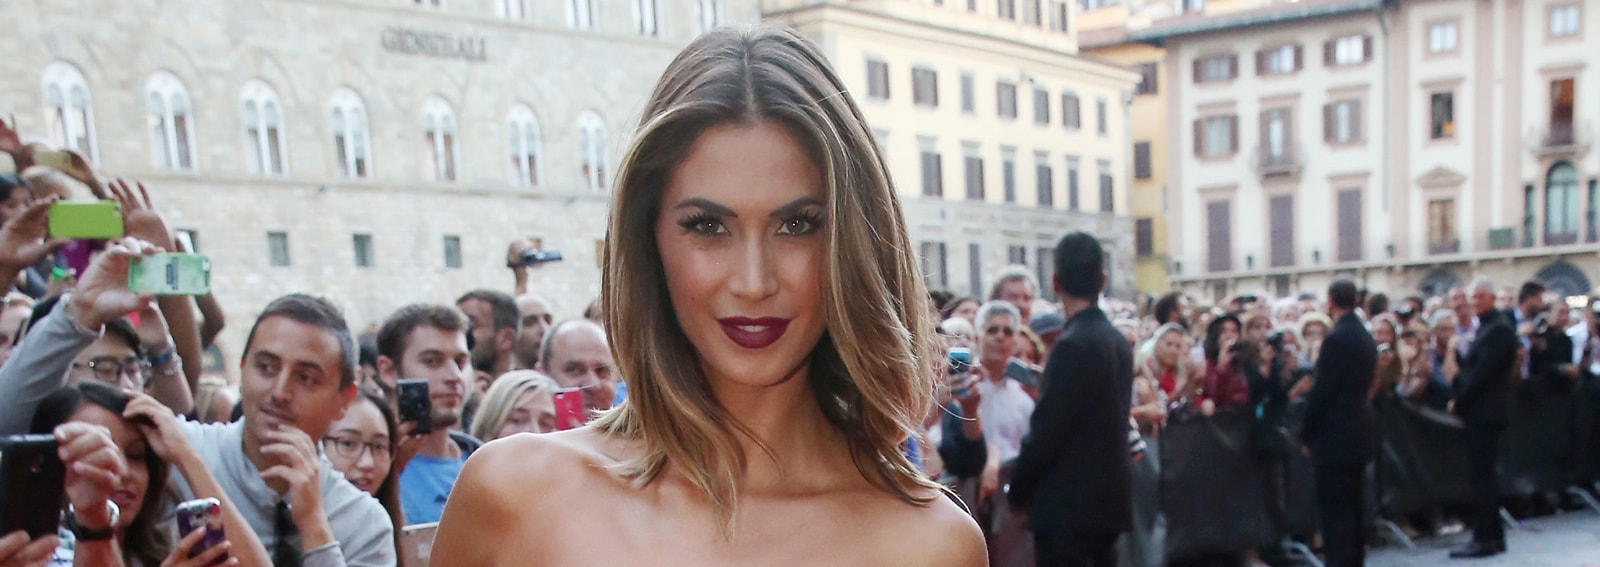 cover segreti stile bellezza melissa satta desktop